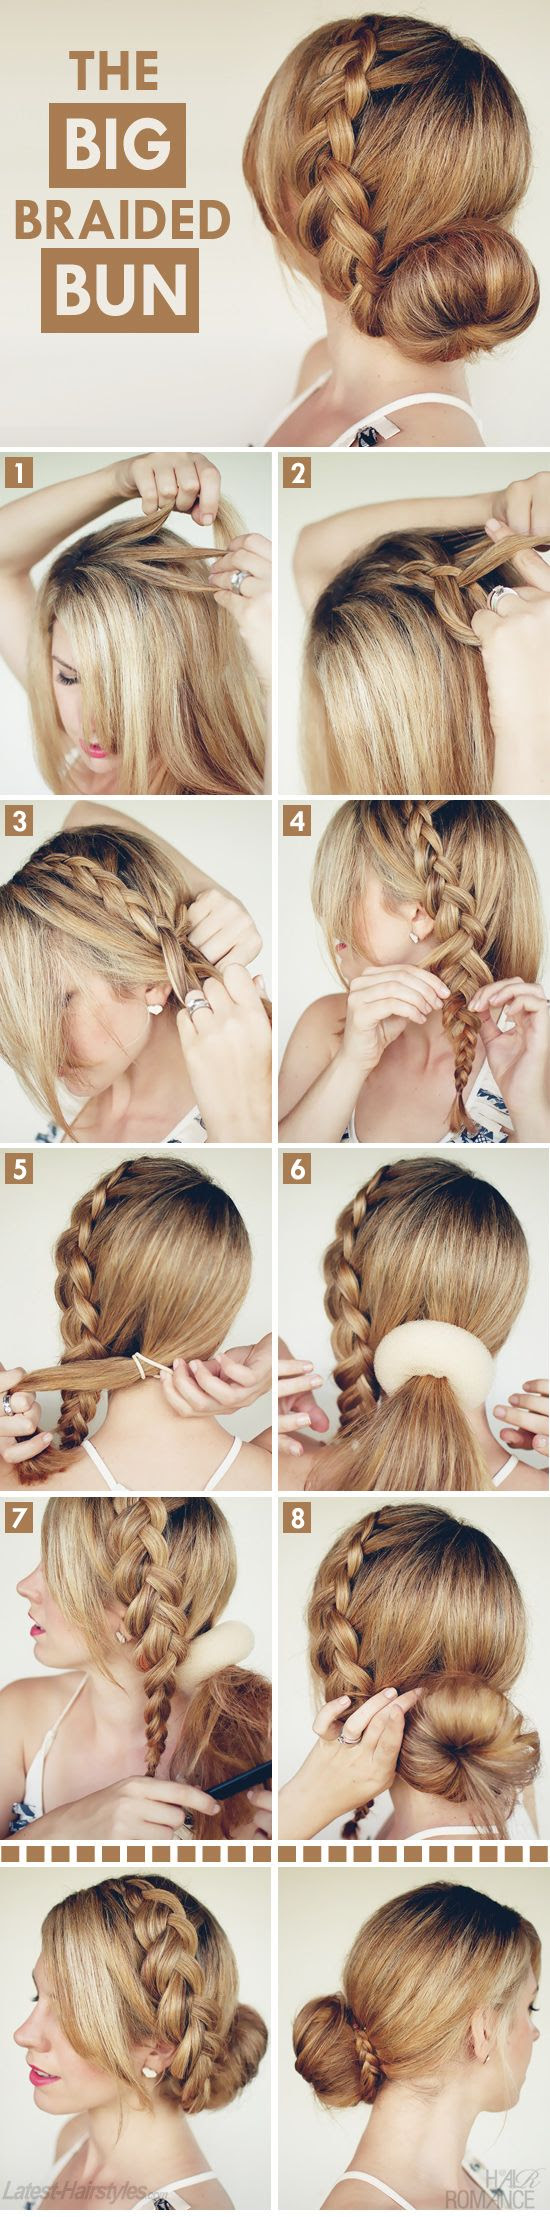 A braided bun.